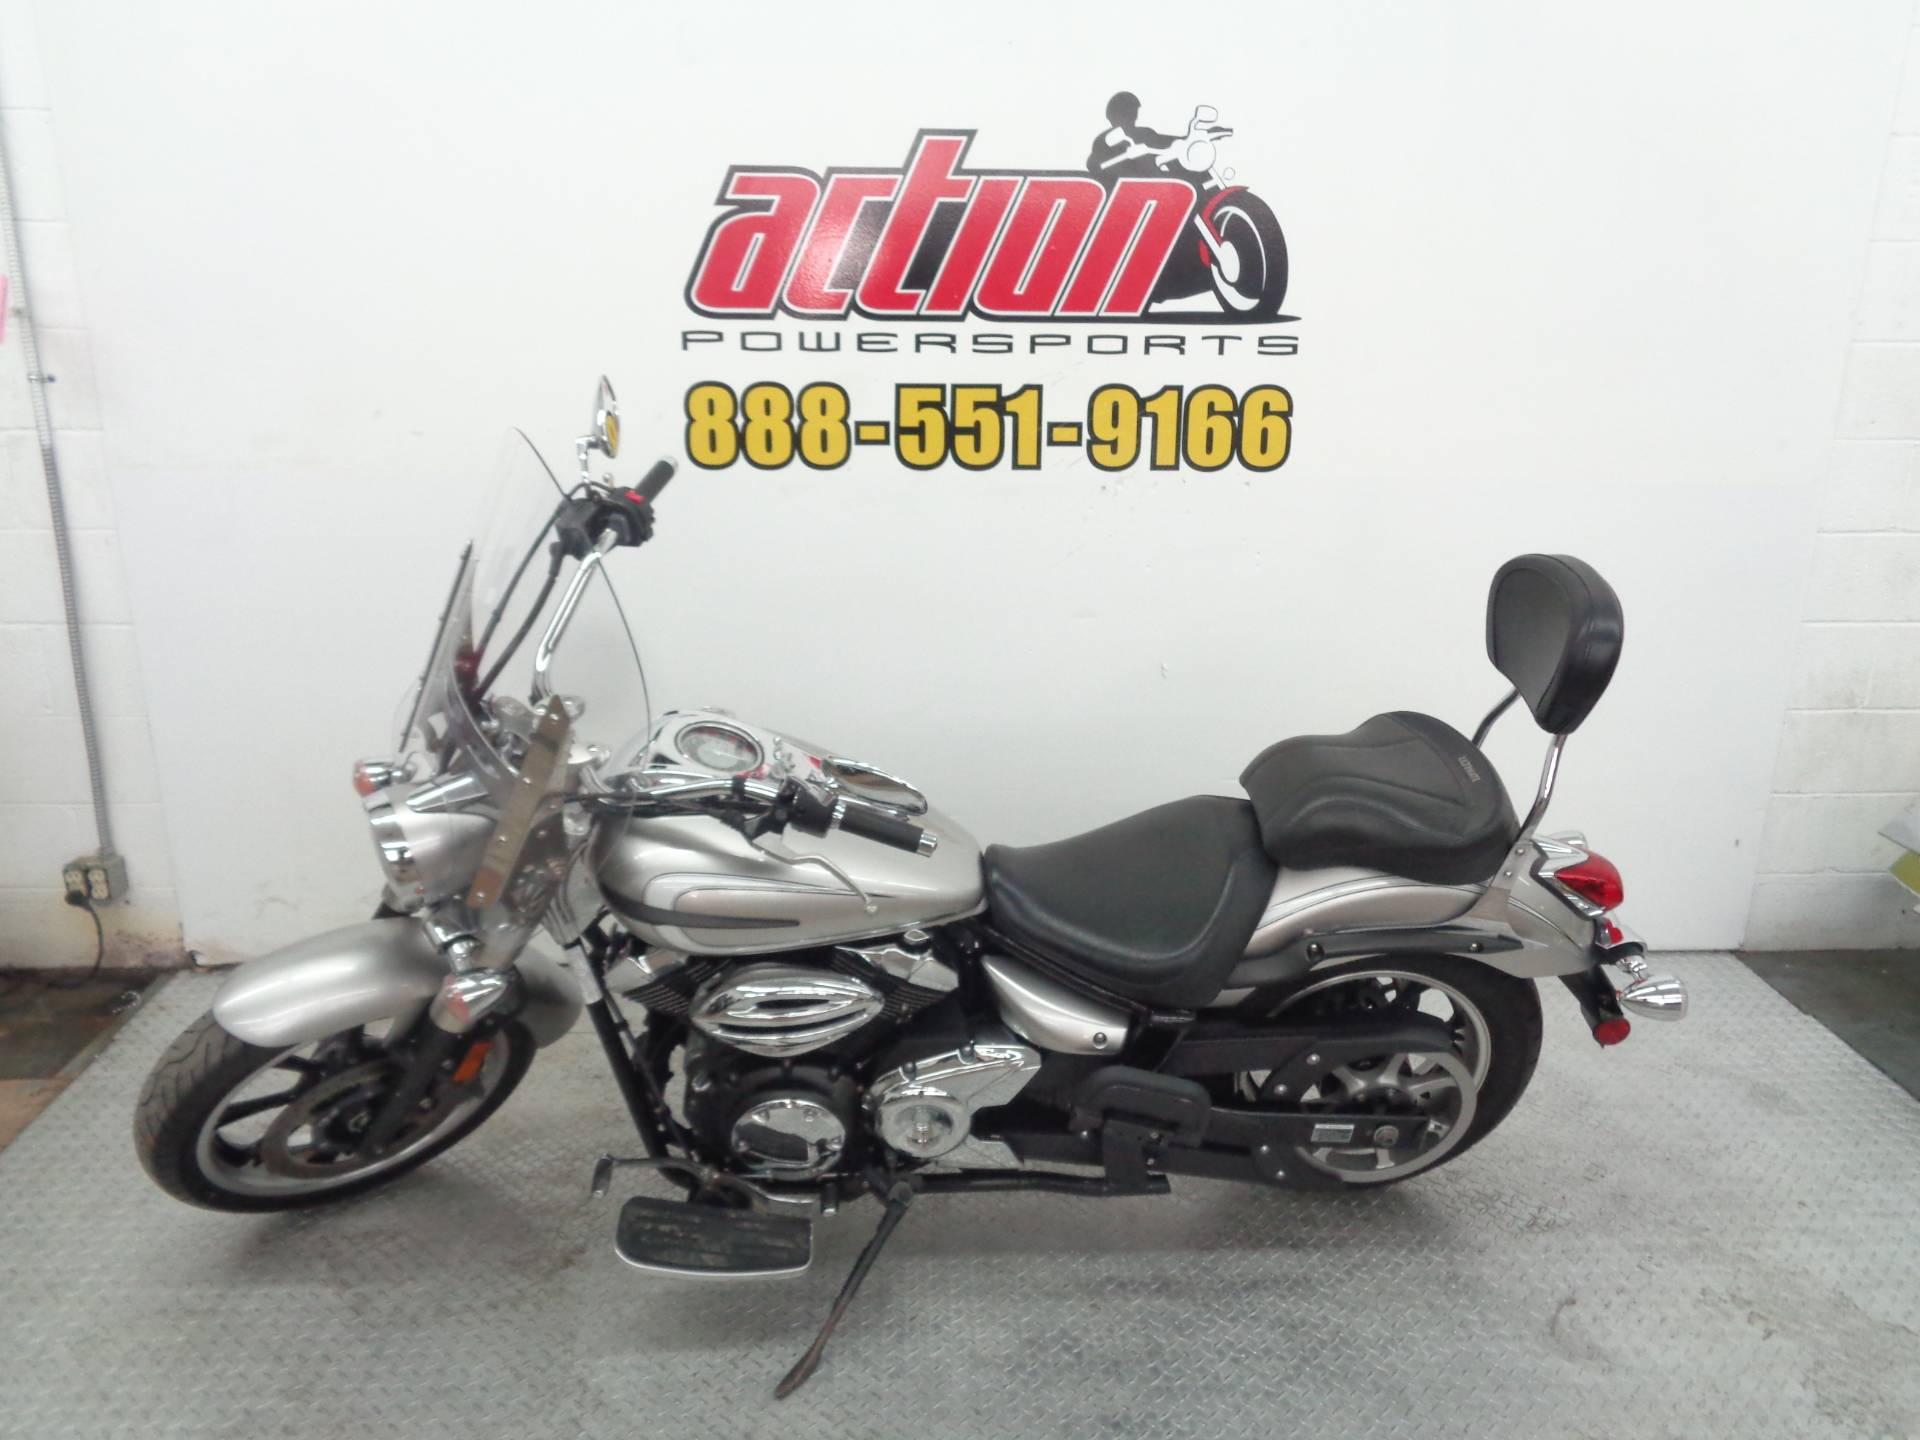 2012 Yamaha V Star 950 in Tulsa, Oklahoma - Photo 2